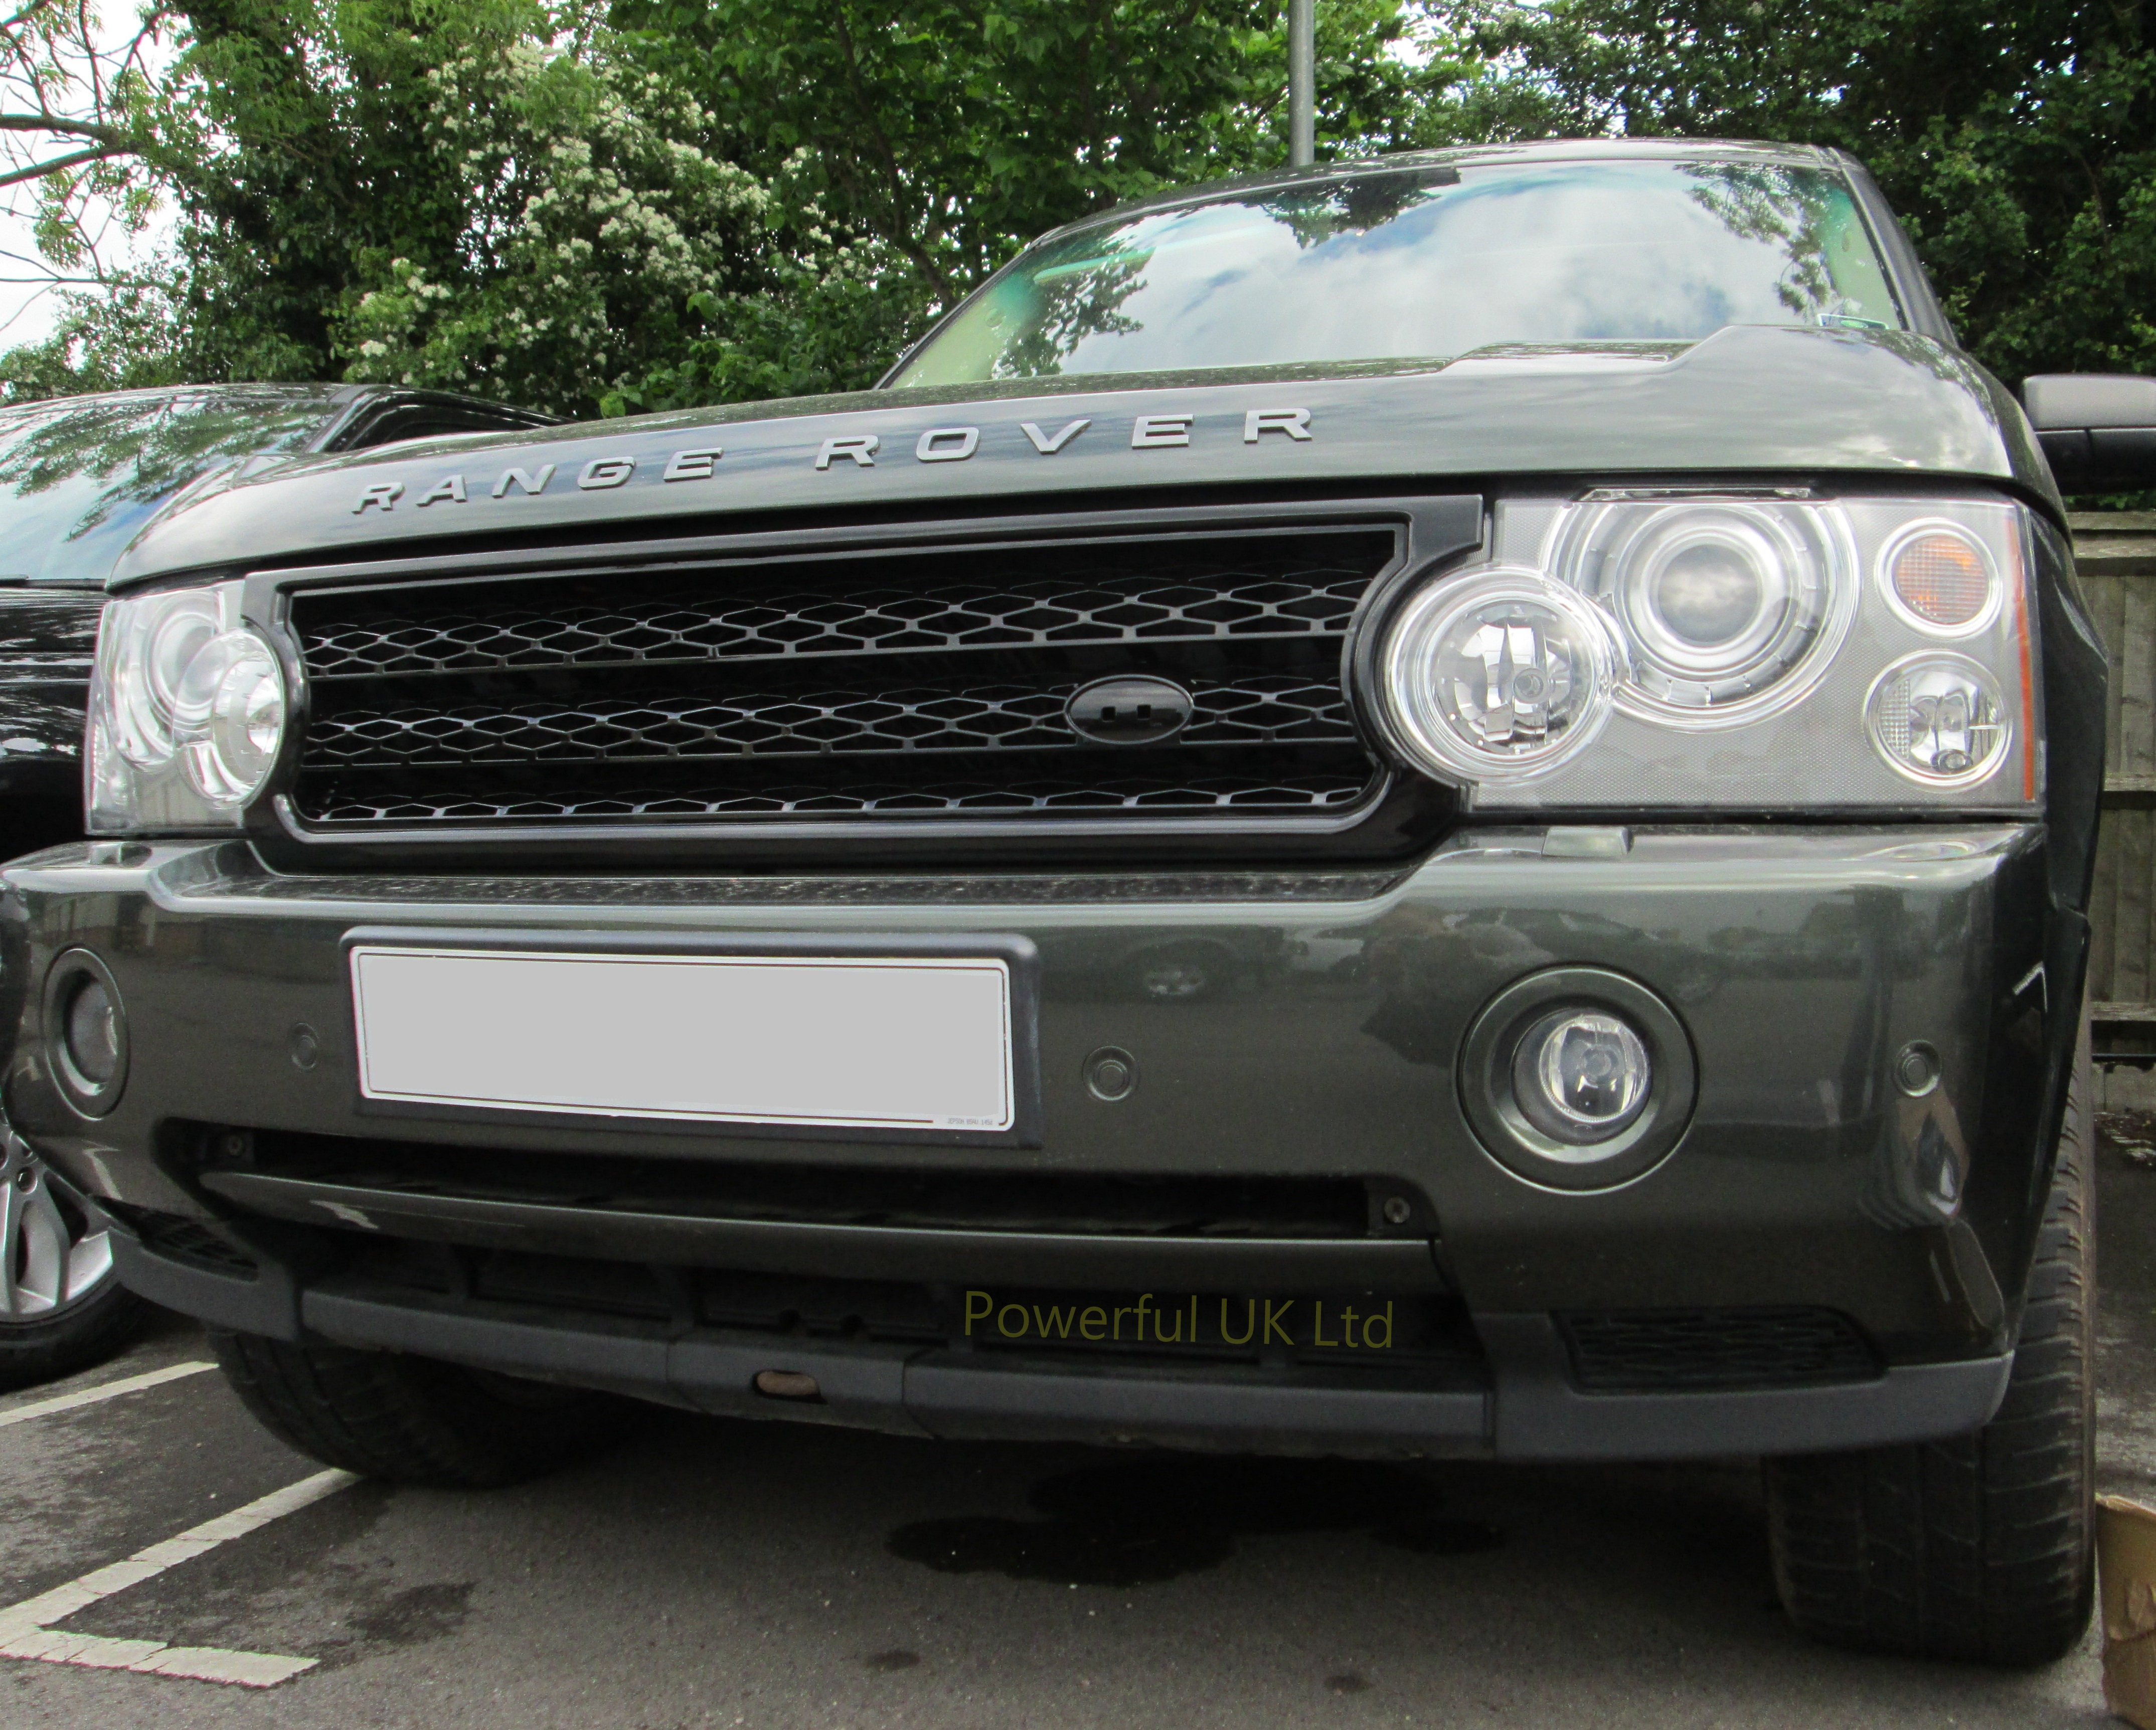 gloss black supercharged front grille for range rover l322 gcat 2005 09 java new ebay. Black Bedroom Furniture Sets. Home Design Ideas